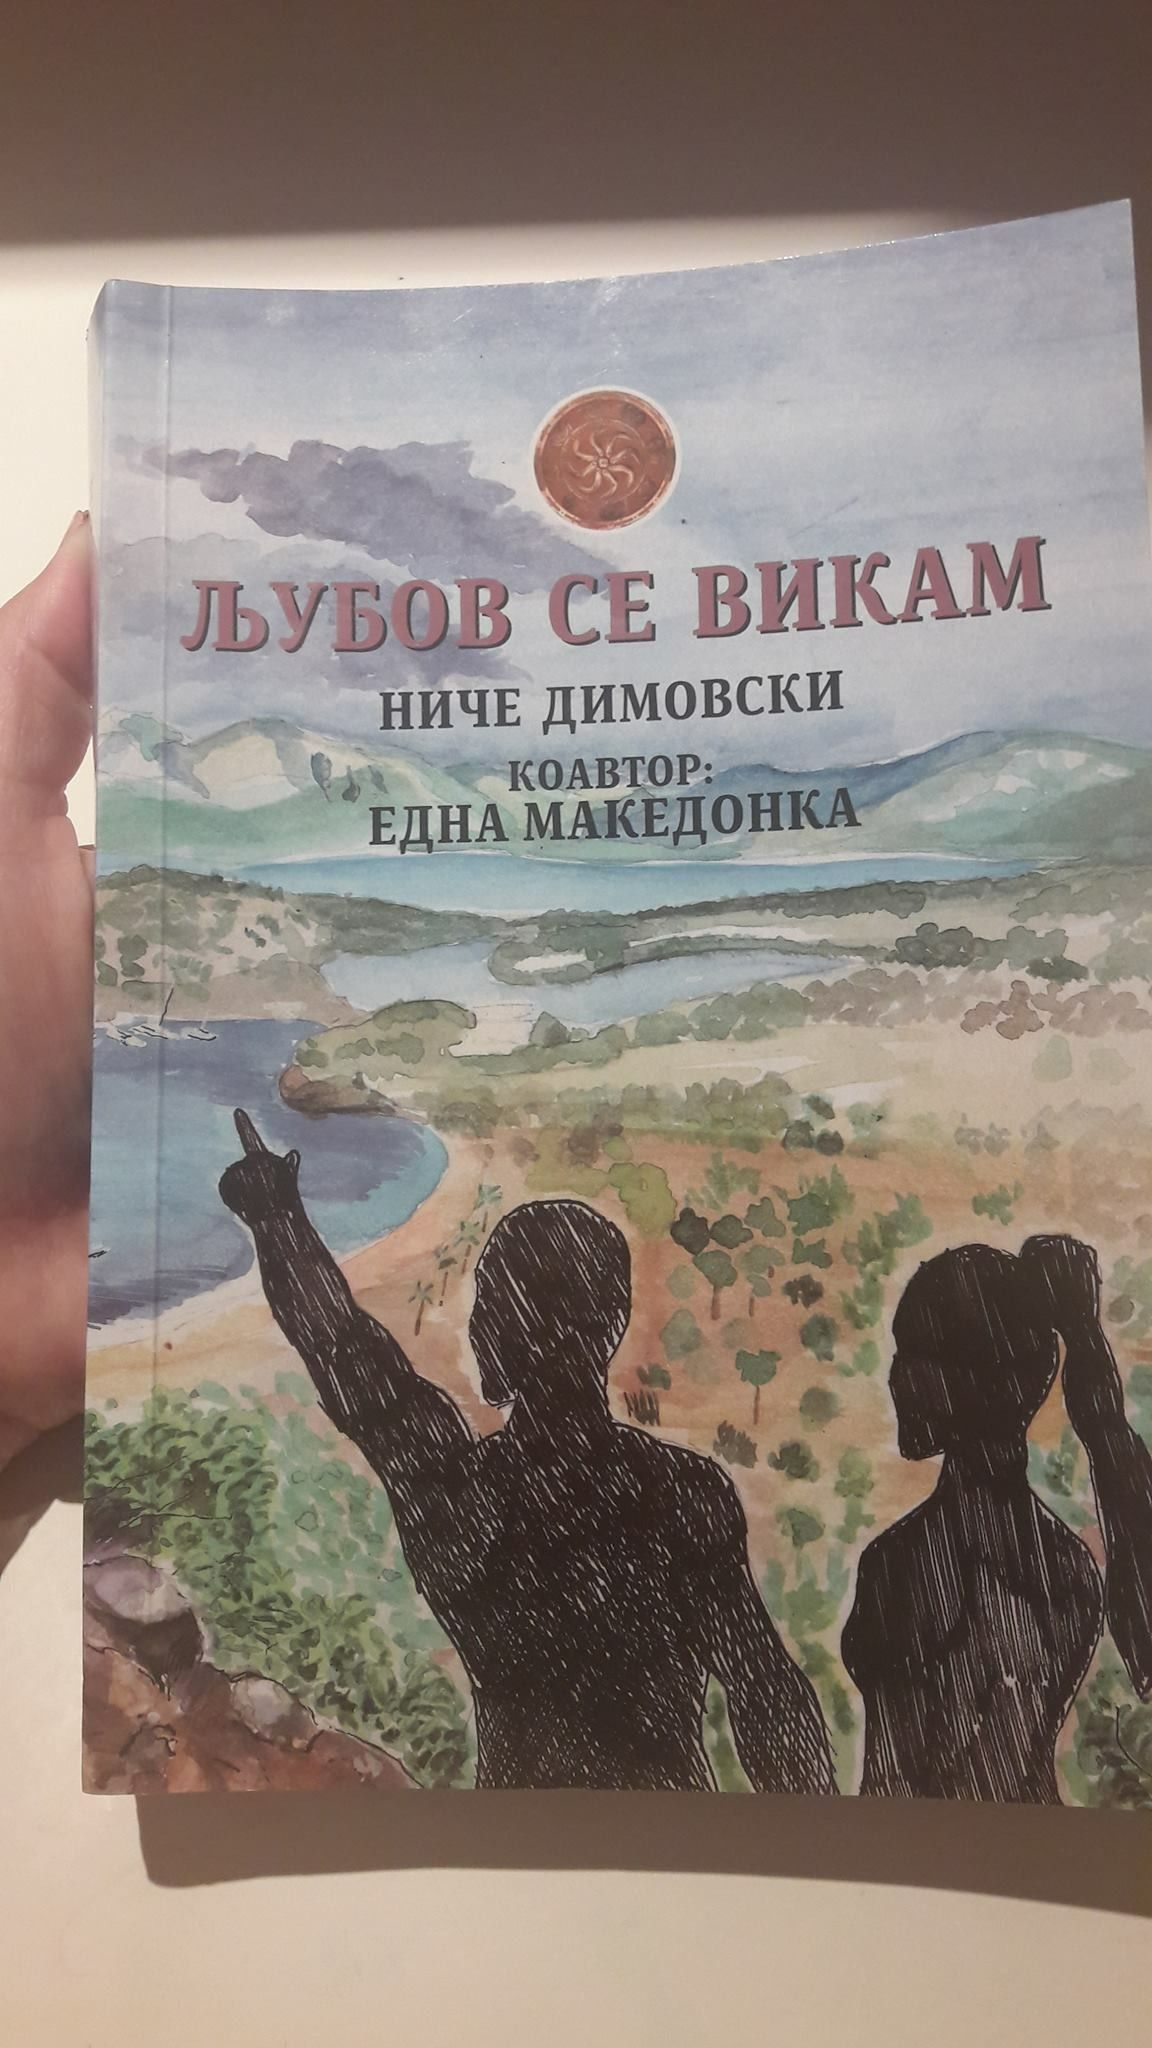 Pin by Софија on САКАМ КНИГИ Book cover, Books, Cover